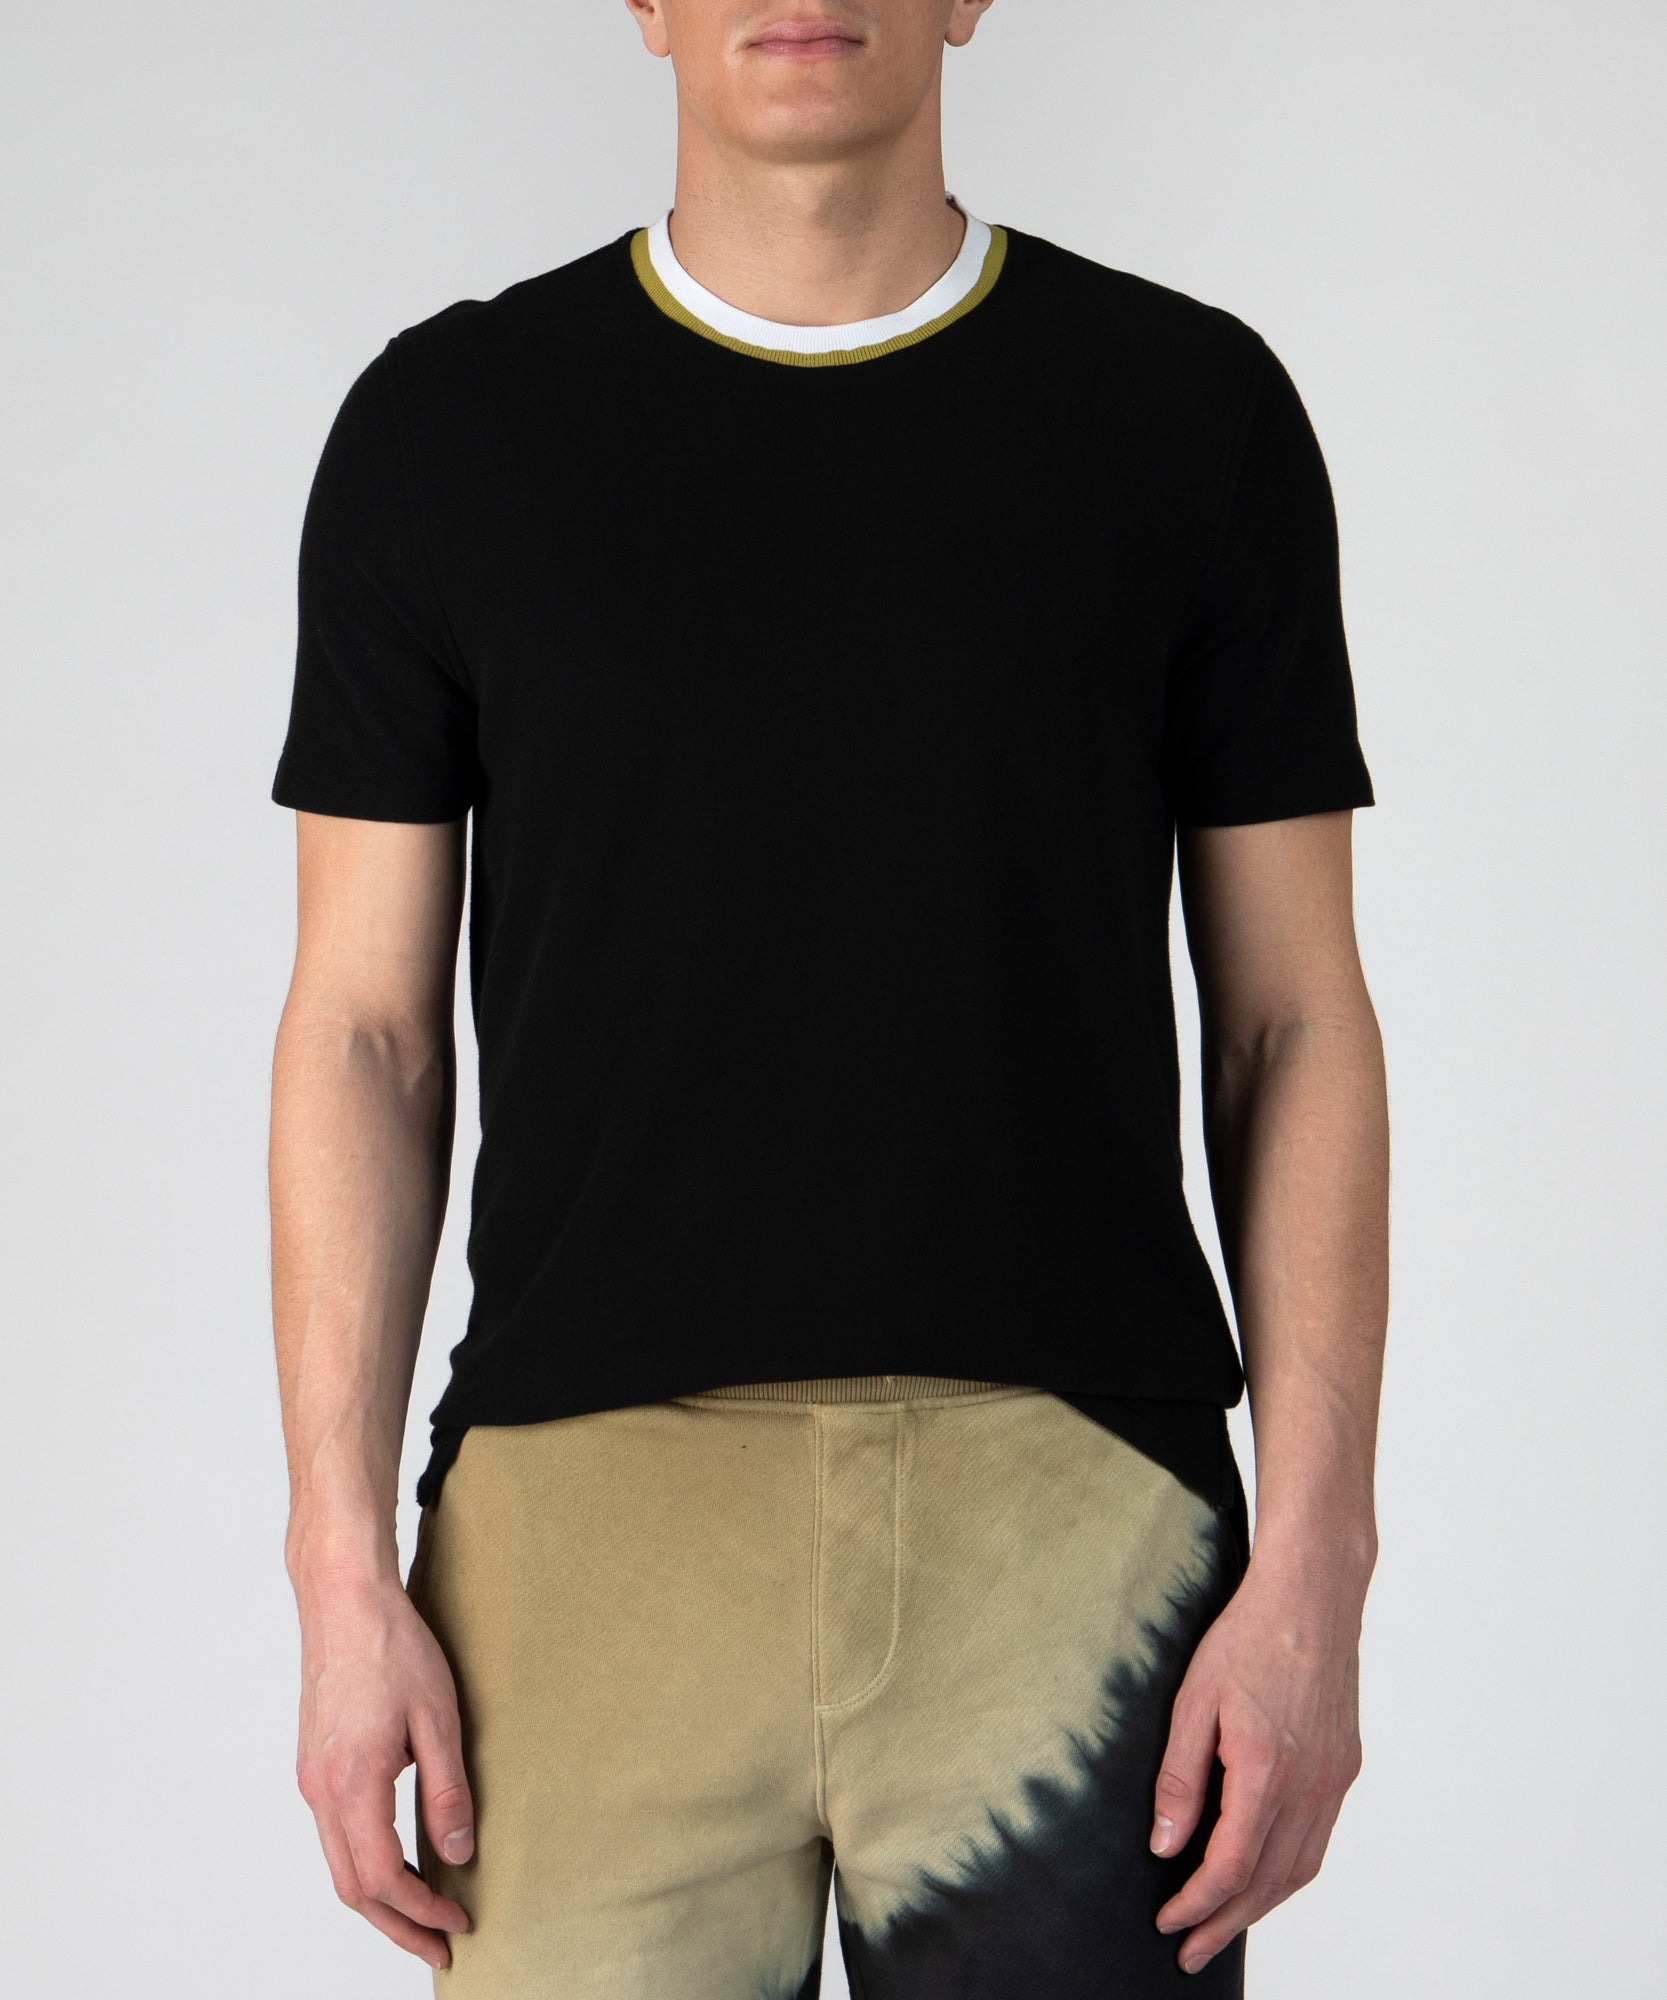 Black Pique Hand Painted Crew Neck Tee- Men's Cotton Short Sleeve T-shirt by ATM Anthony Thomas Melillo